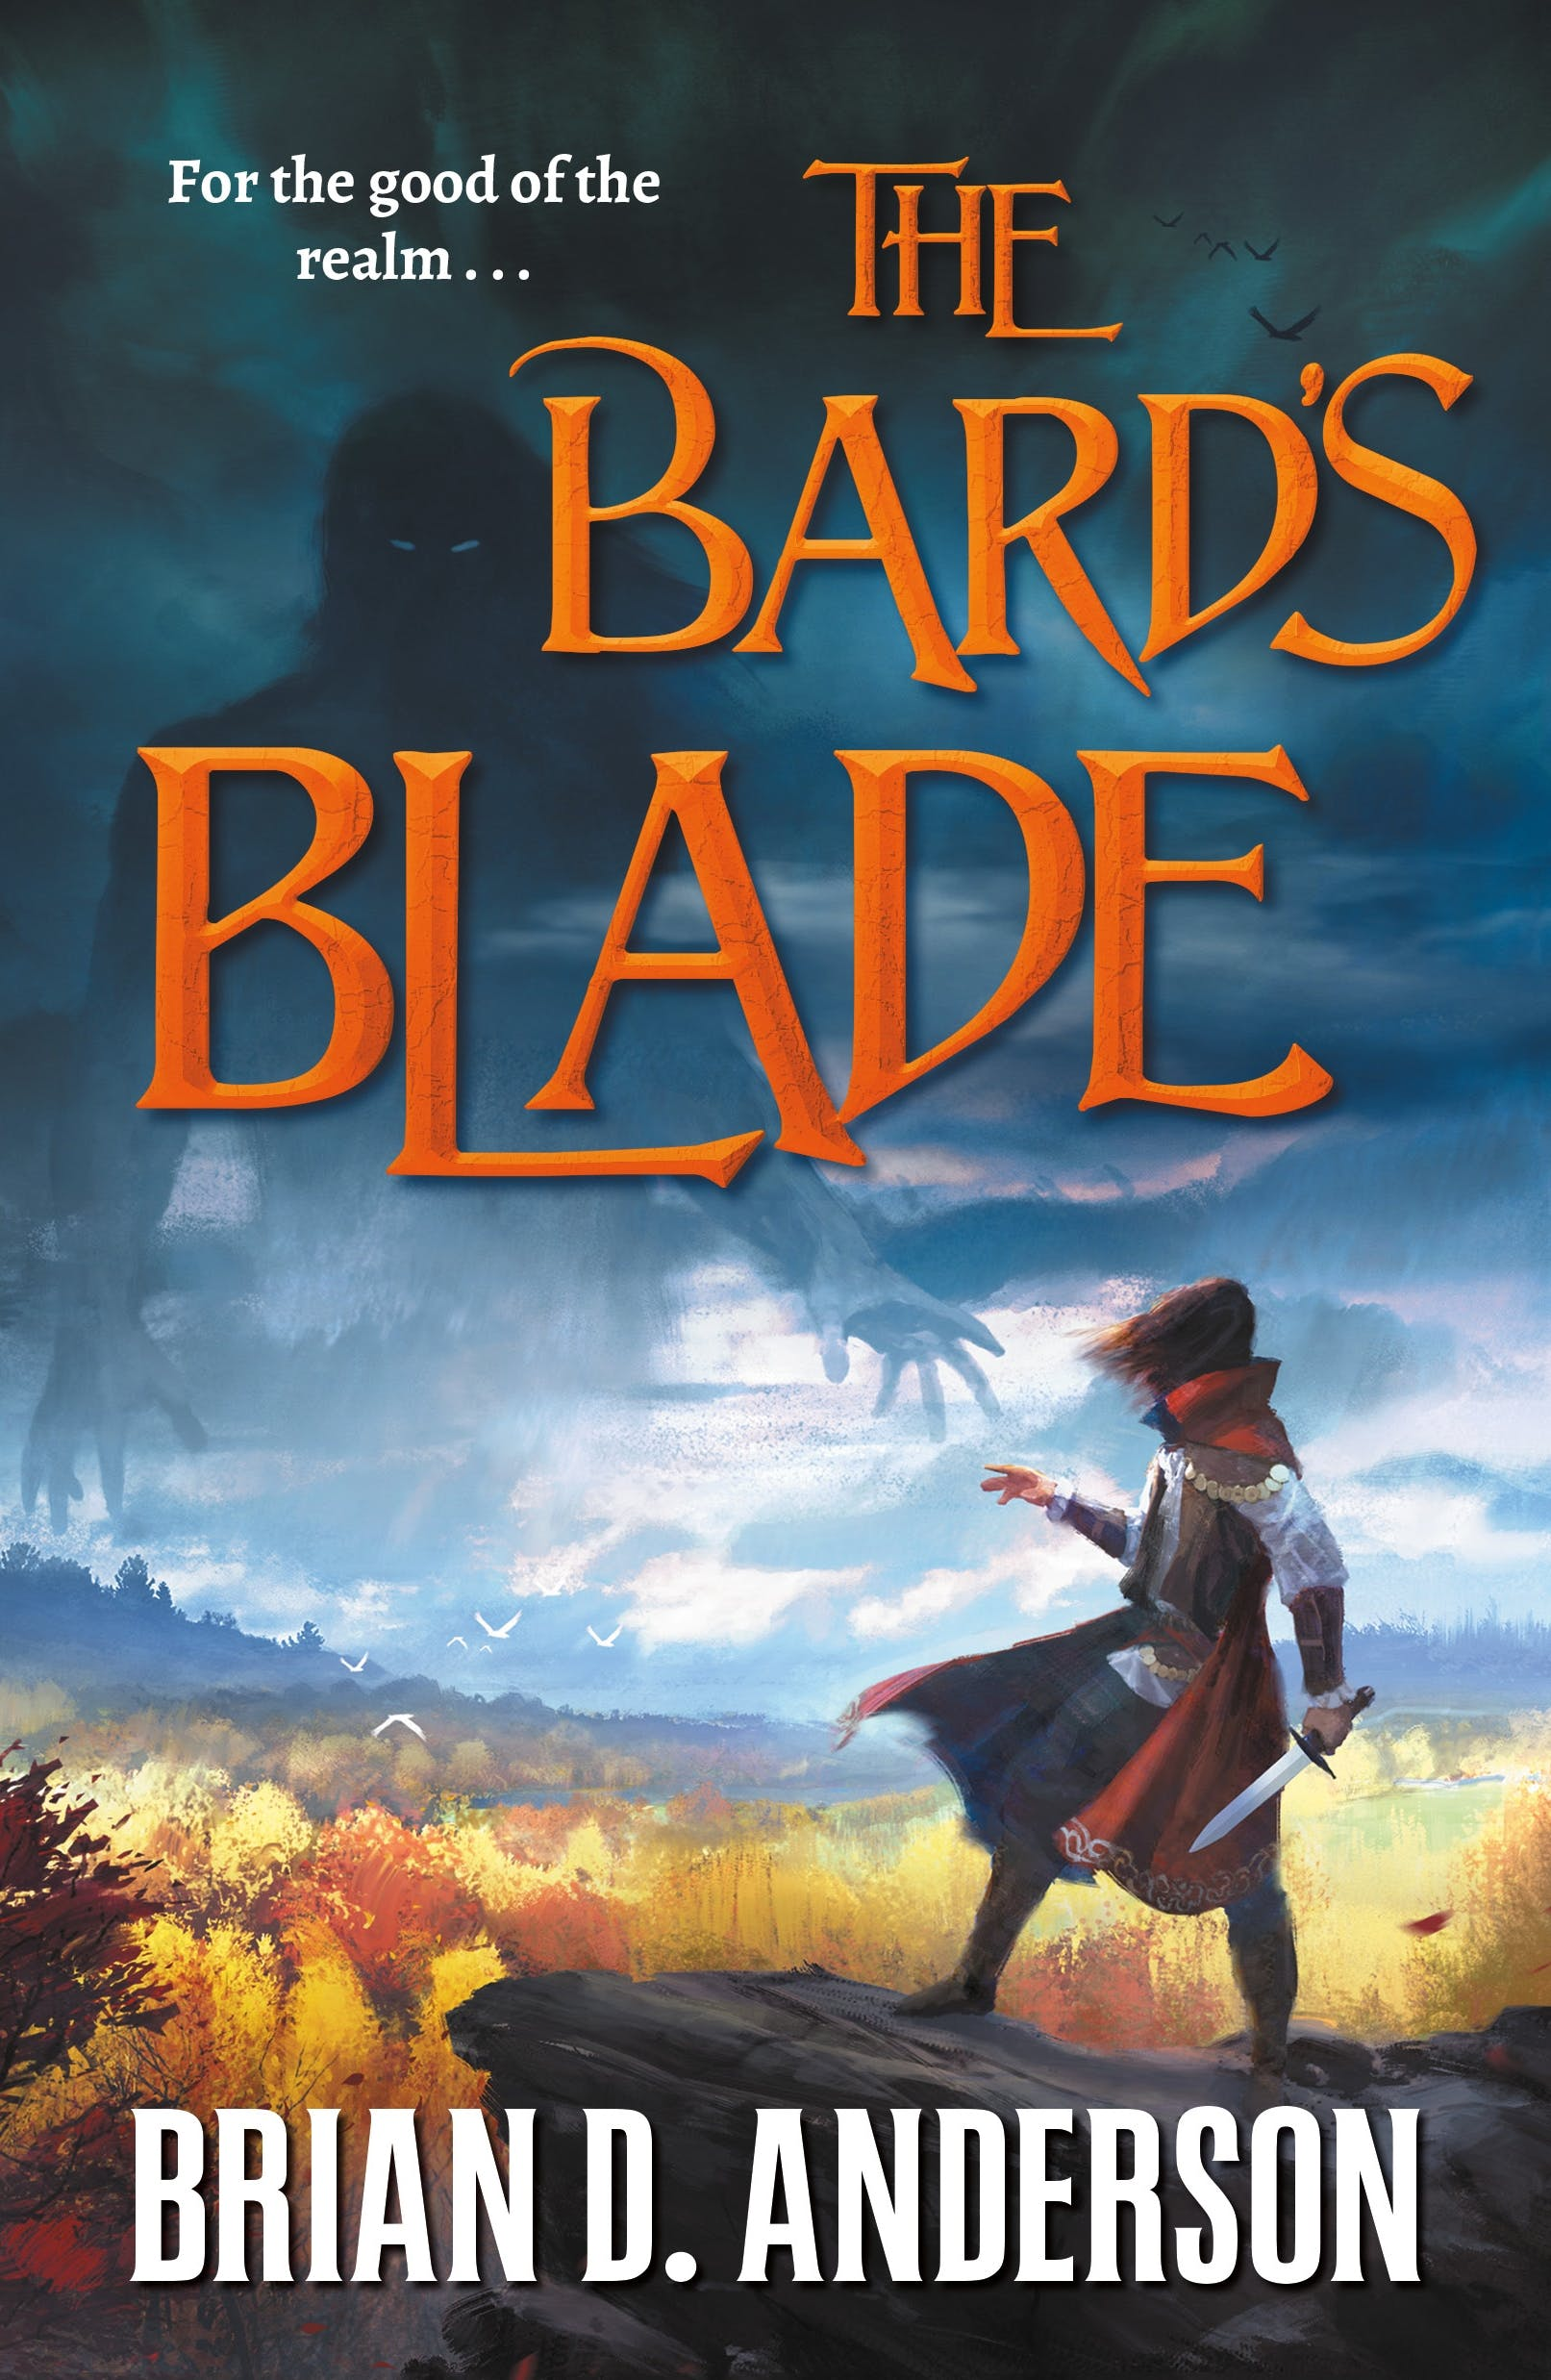 Image of The Bard's Blade